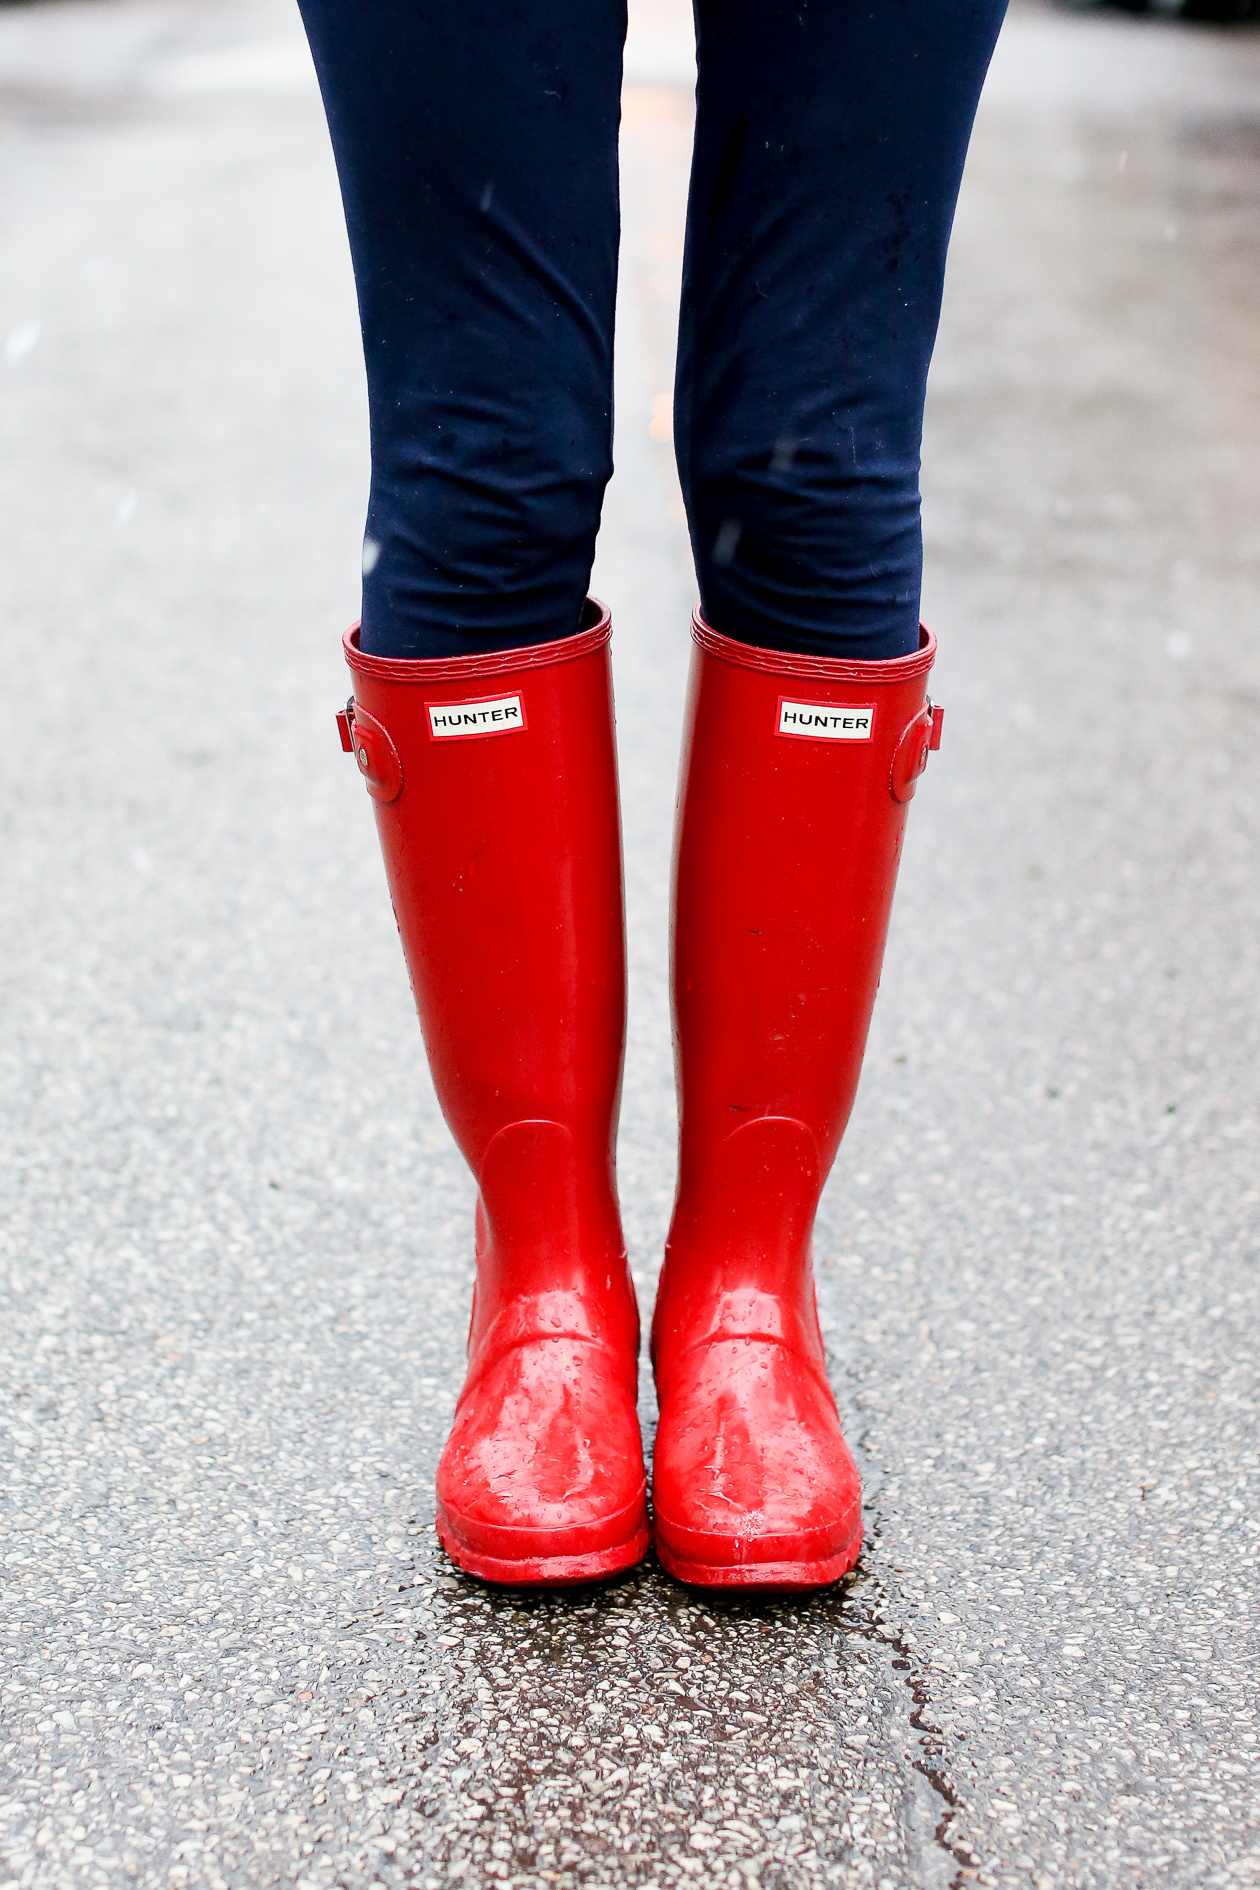 Bathroom scales boots - Download Red Glossy Hunter Boots Chicago Blogger 31 Bathroom Scales